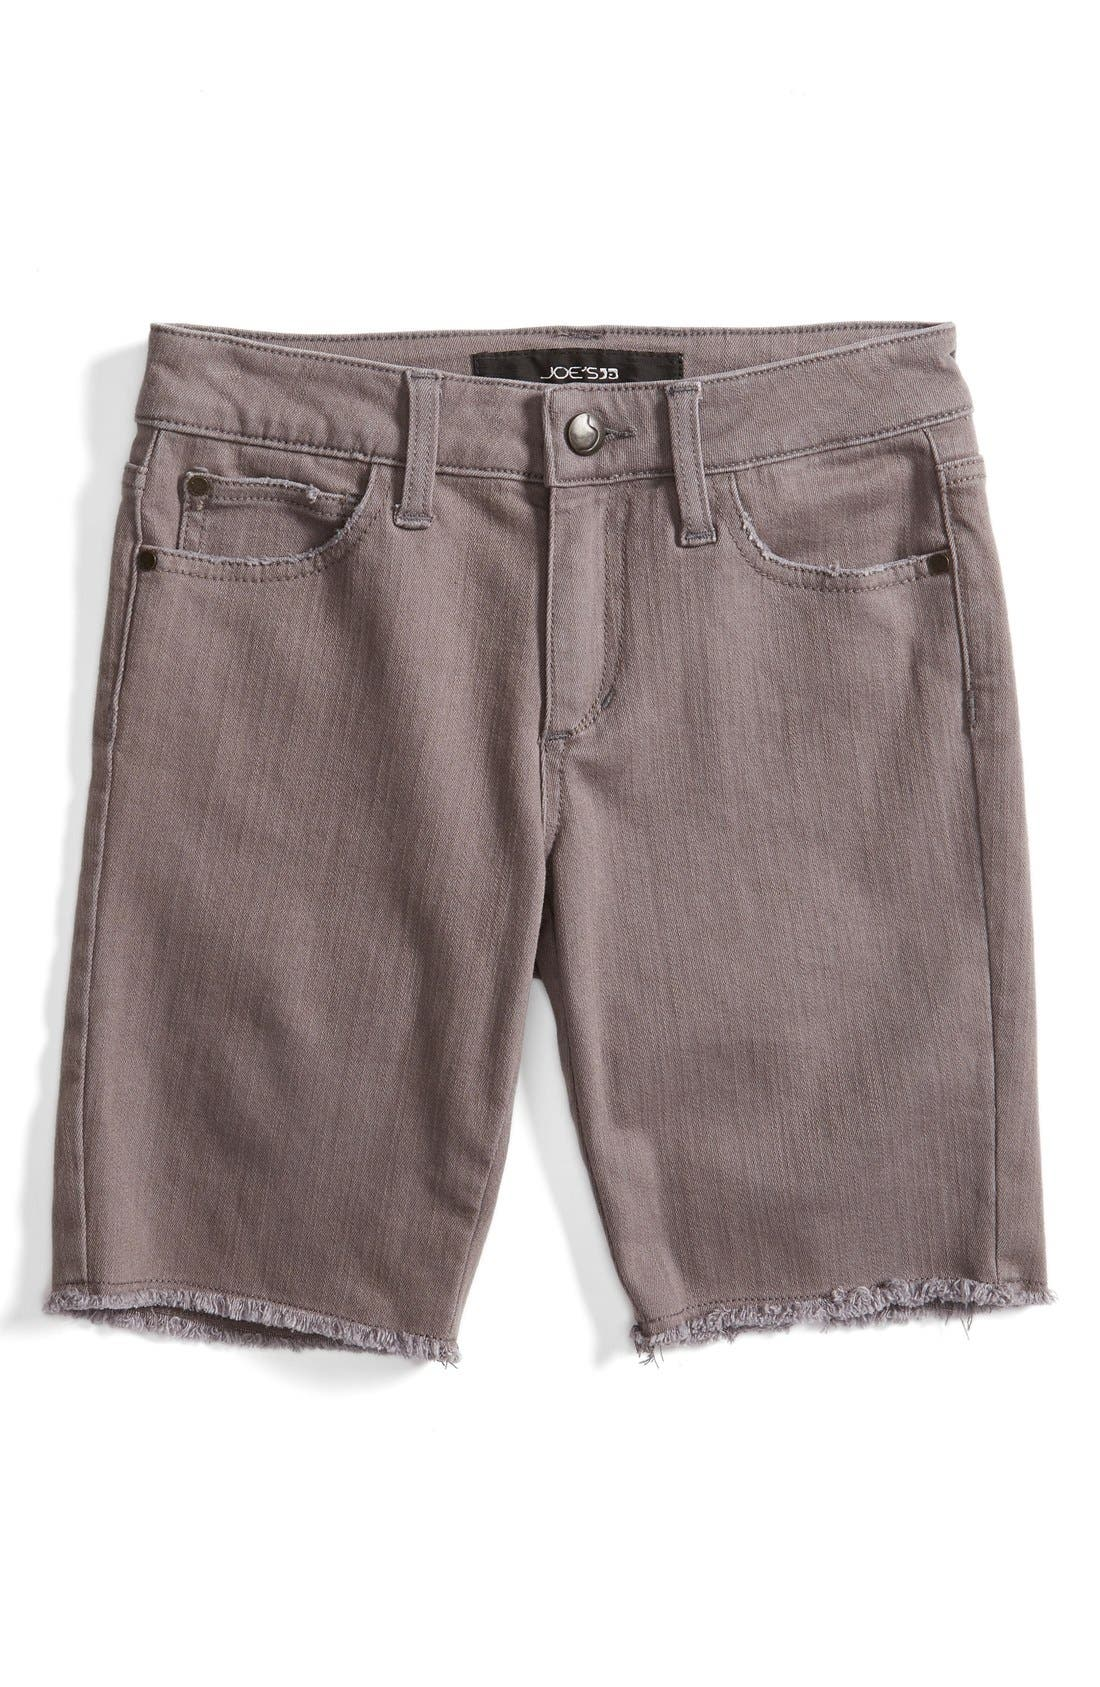 Frayed Hem Bermuda Shorts,                             Main thumbnail 1, color,                             020